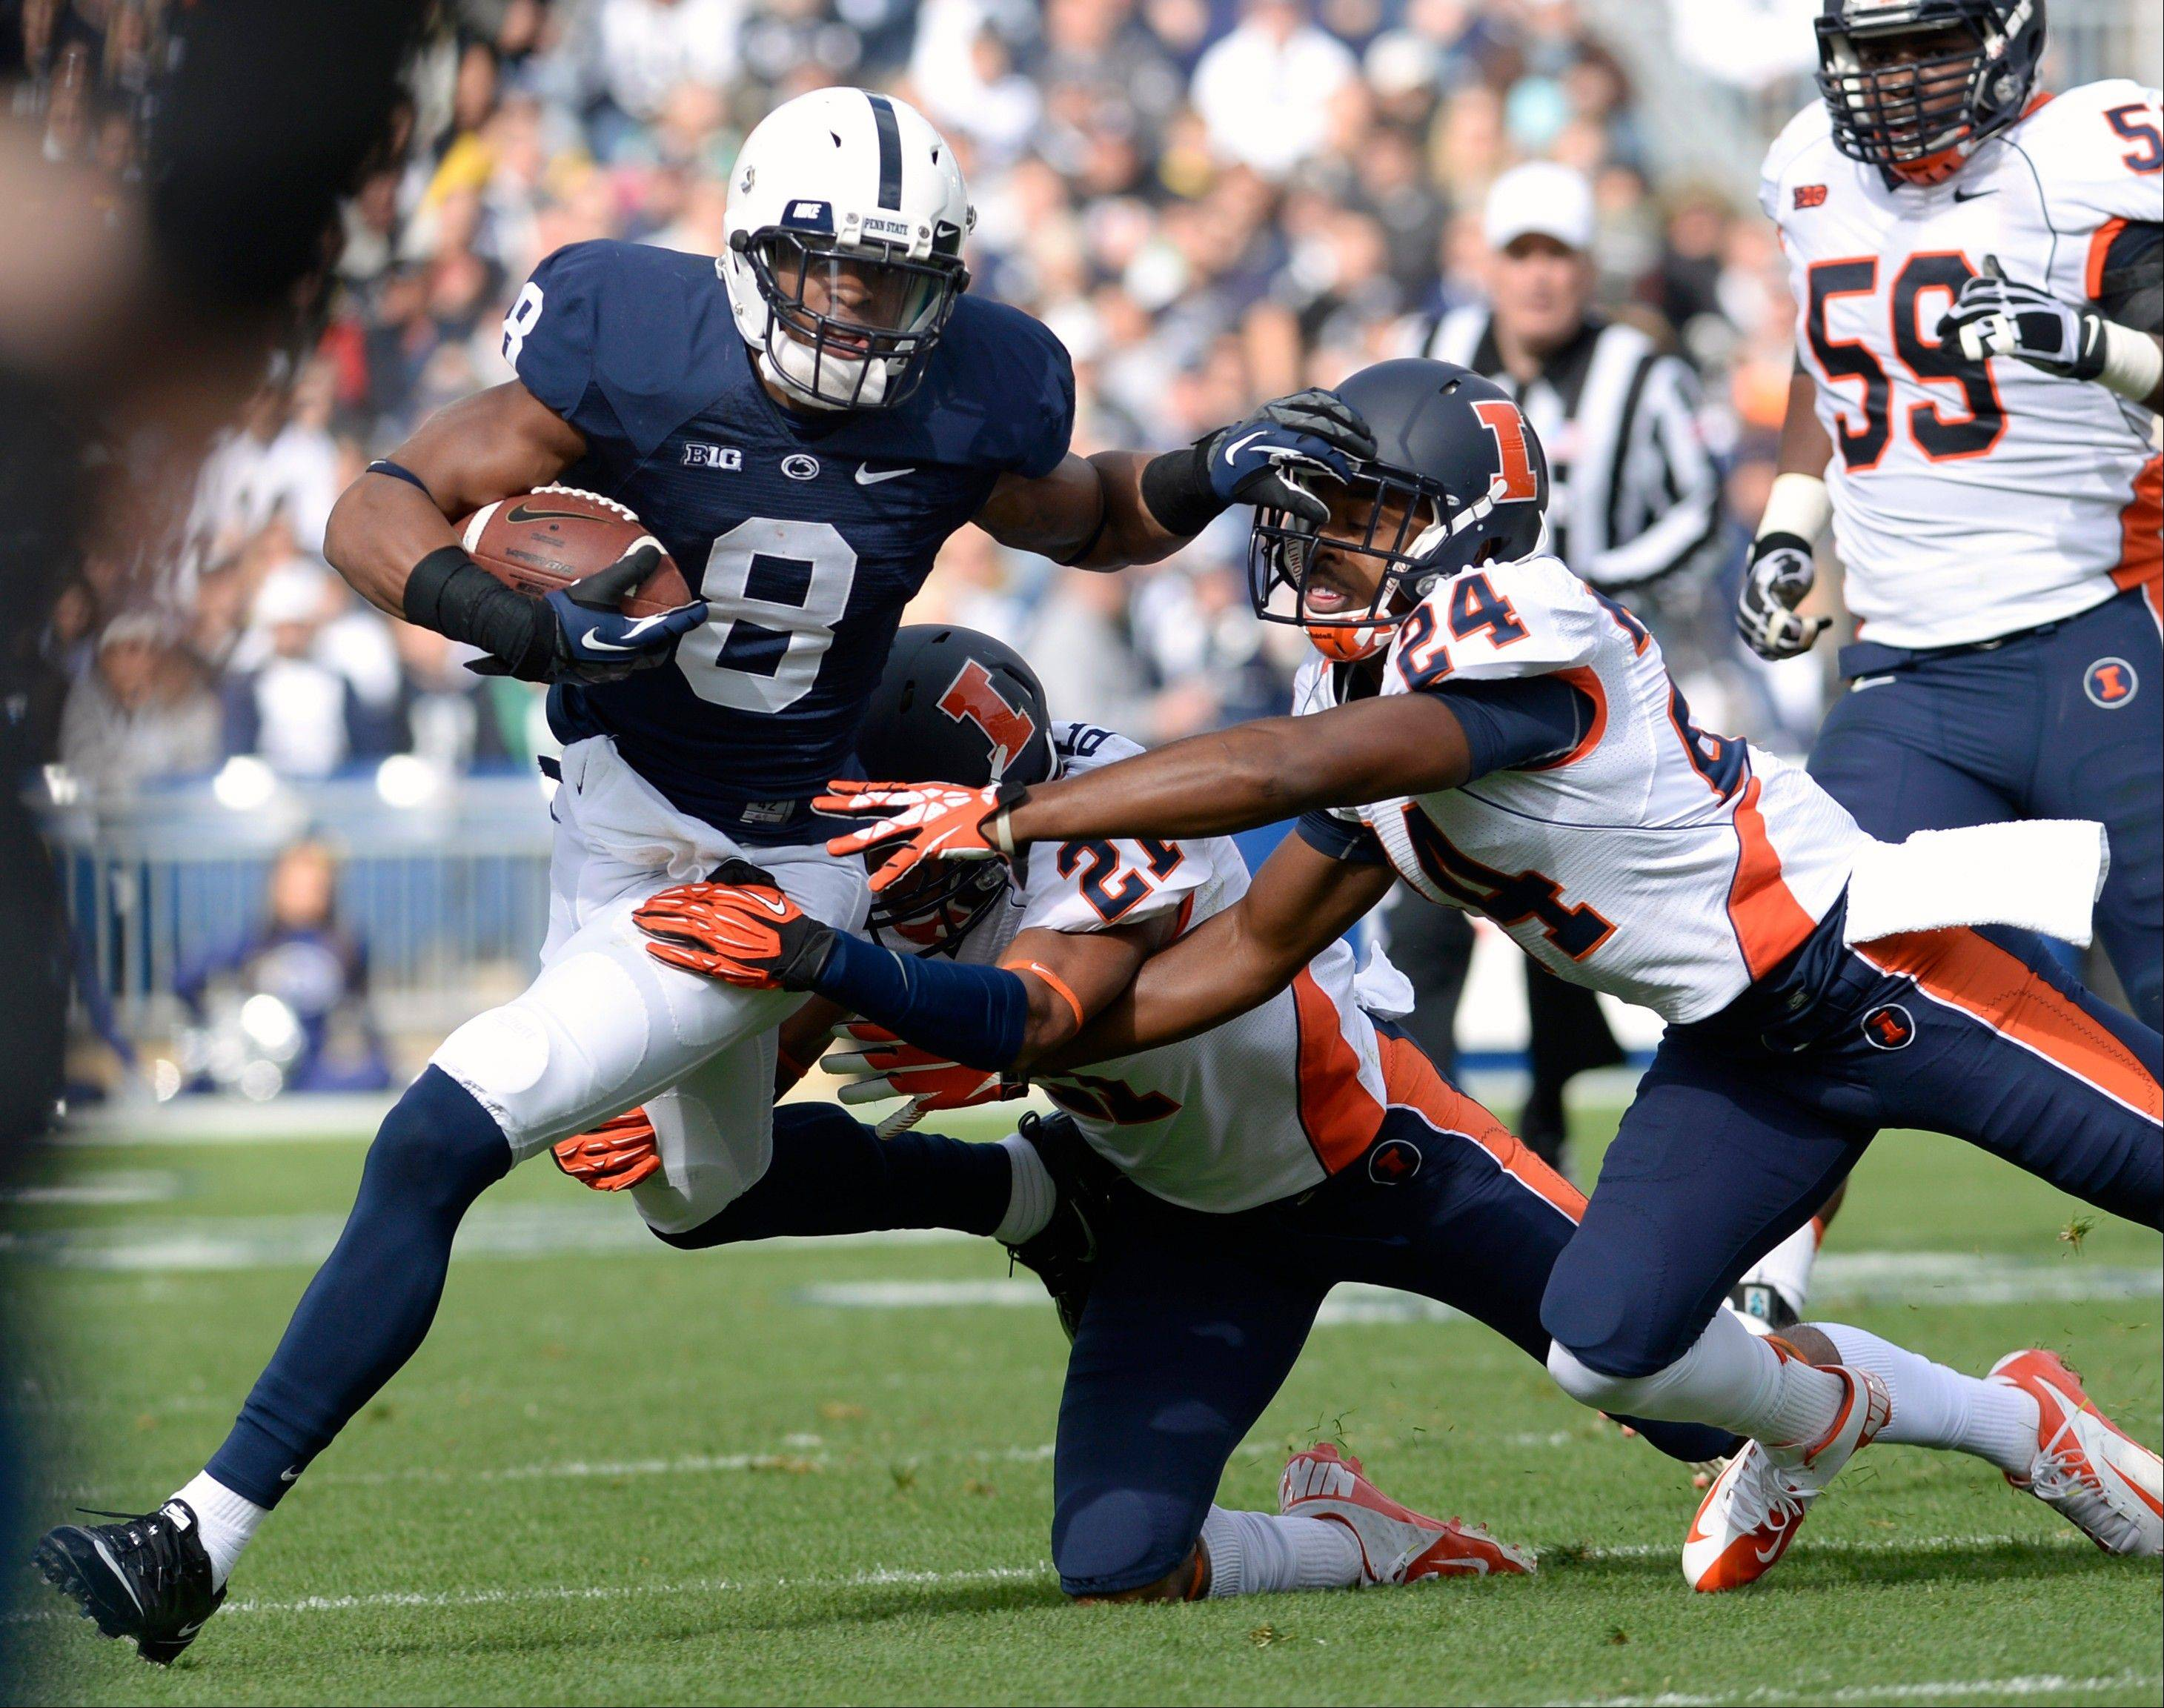 Penn State's Allen Robinson (6) tries to elude Illinois defenders Zane Petty (21) and Darius Mosely (24) in the first quarter of an NCAA college football game against Illinois in State College, Pa., Saturday, Nov. 2, 2013.